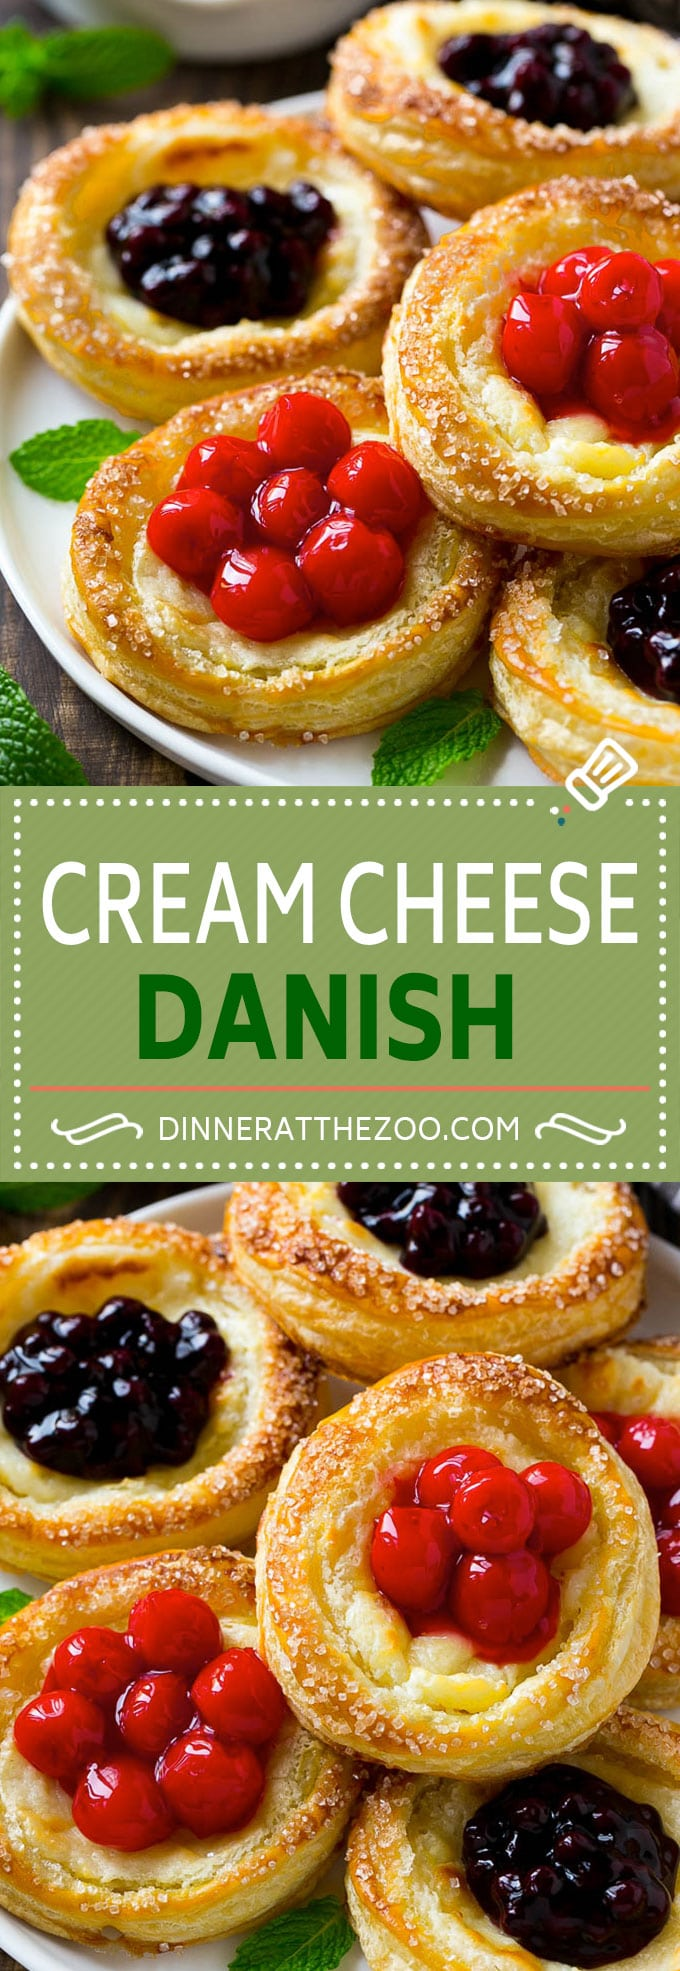 Cream Cheese Danish Recipe | Cream Cheese and Fruit Danish | Cream Cheese and Cherry Danish | Breakfast Pastries